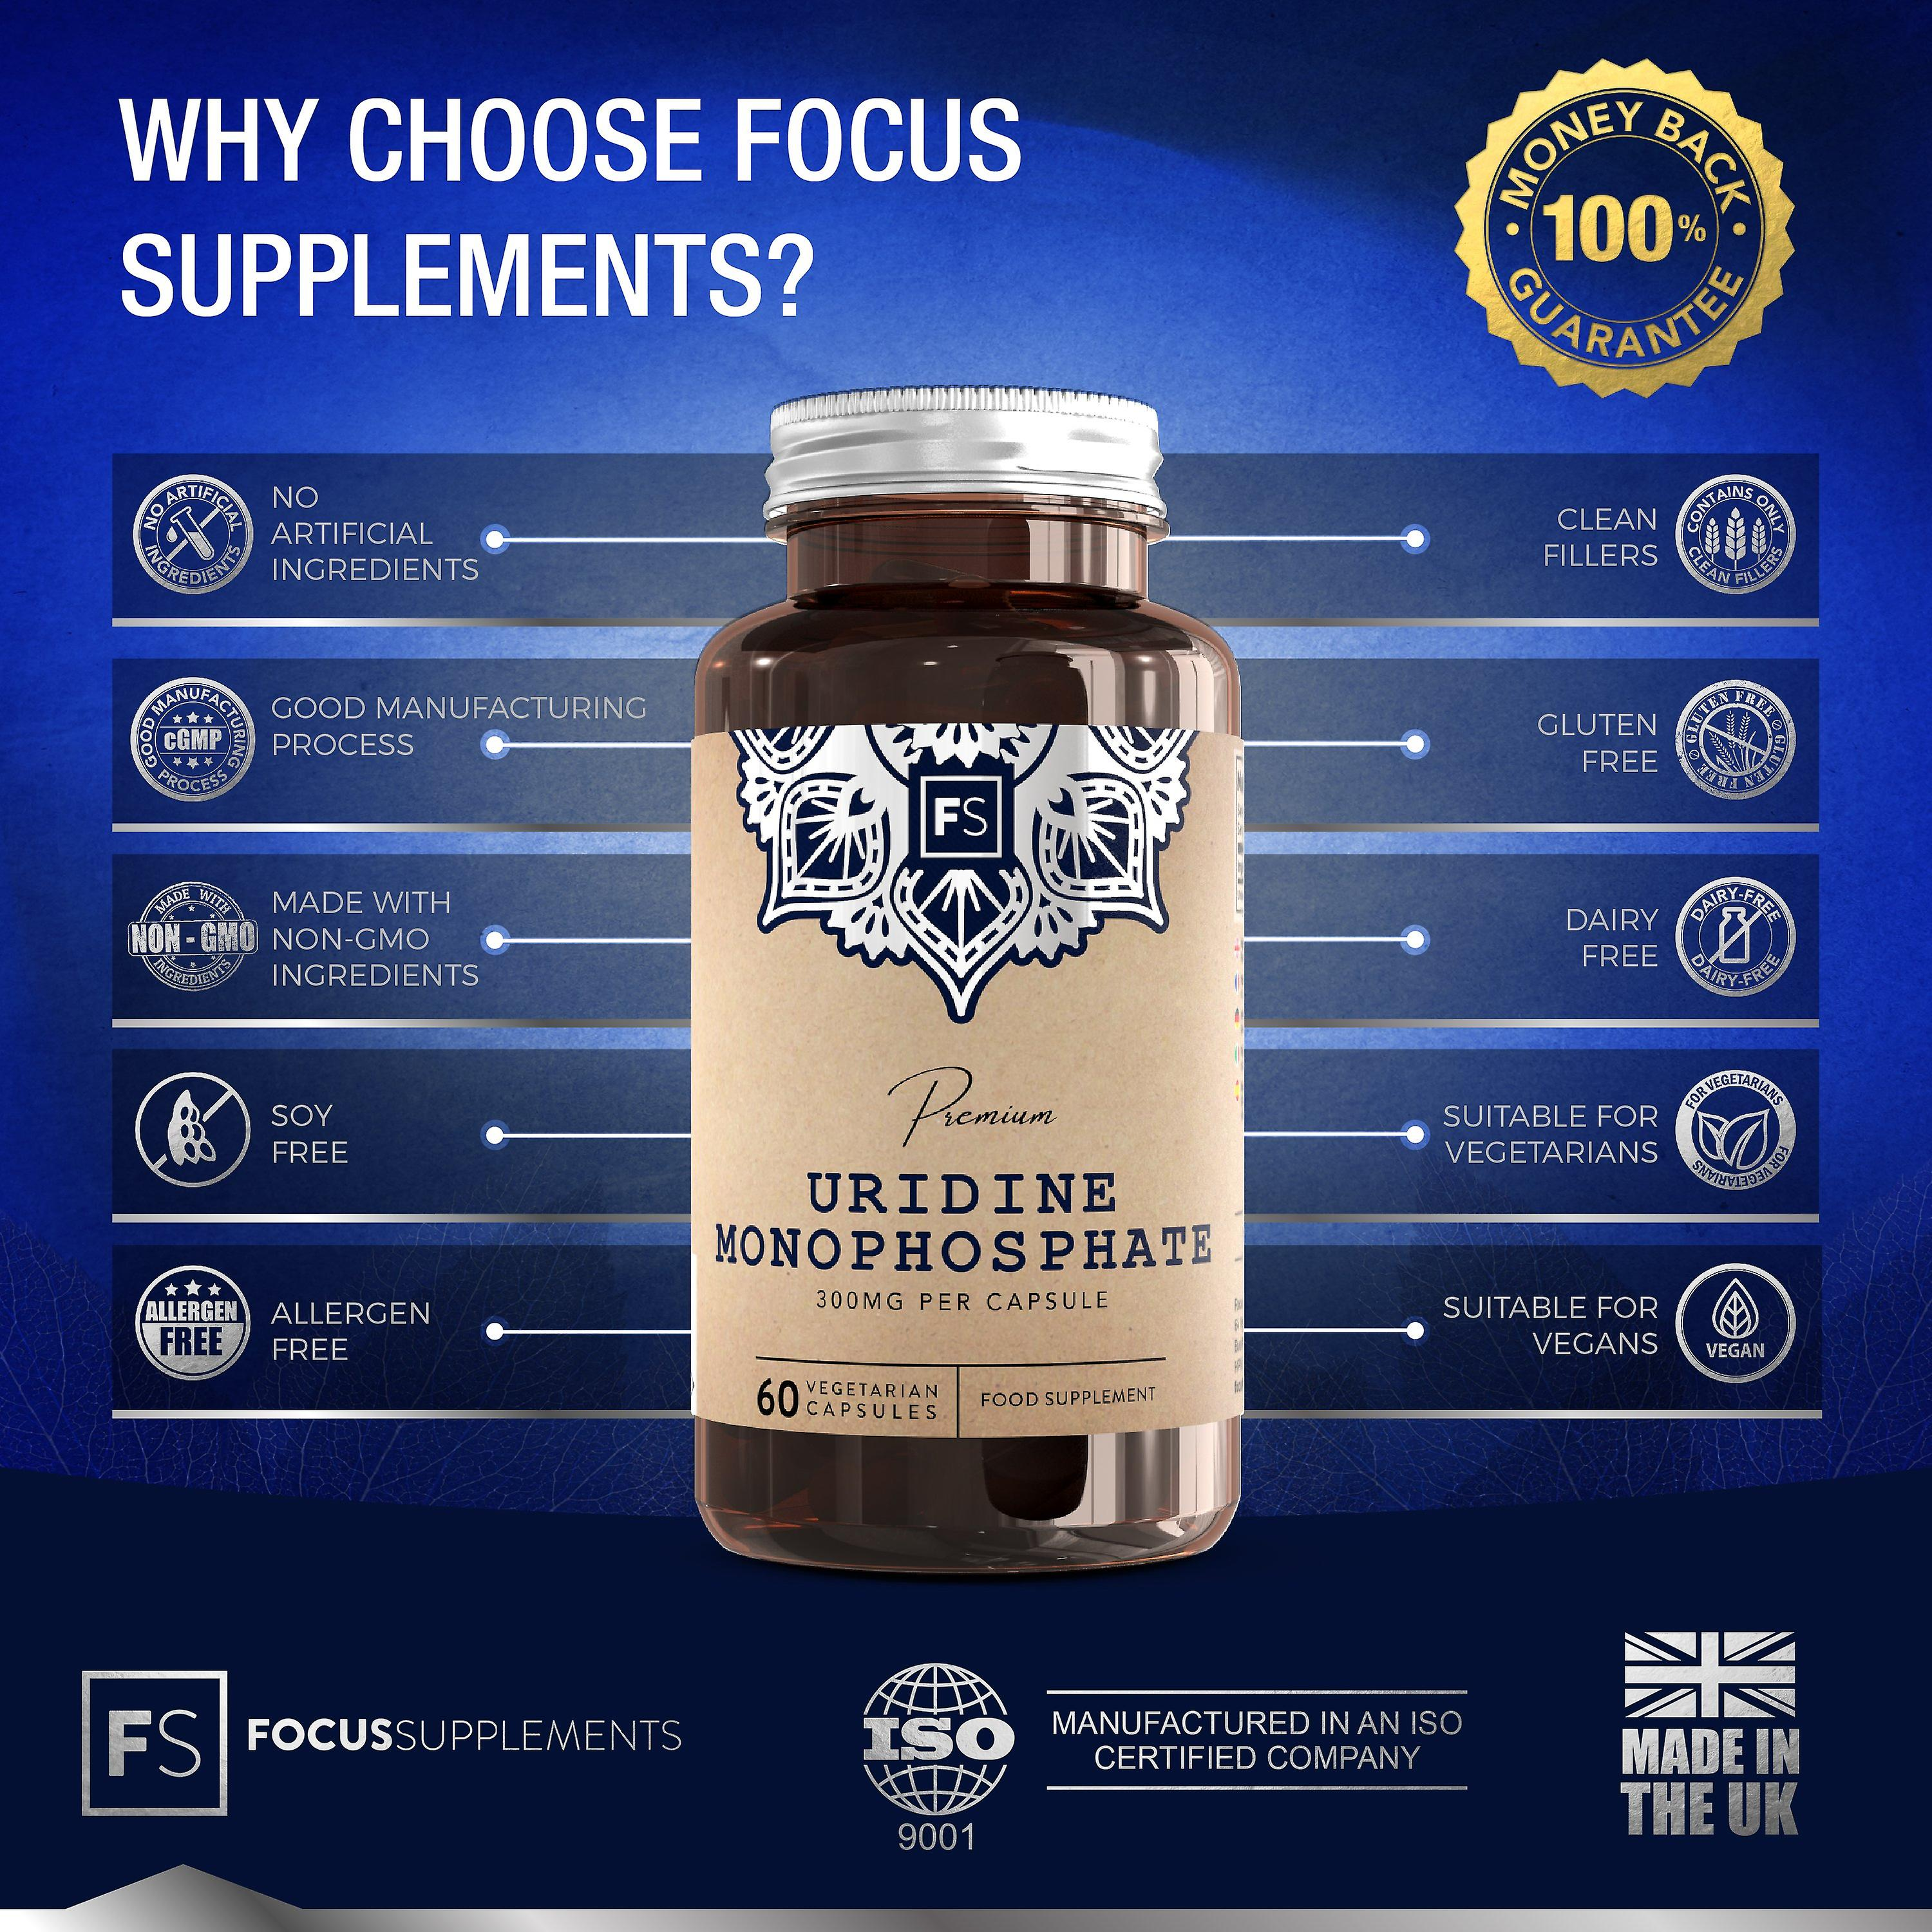 Focus Supplements Uridine Monophosphate (300mg) Capsules